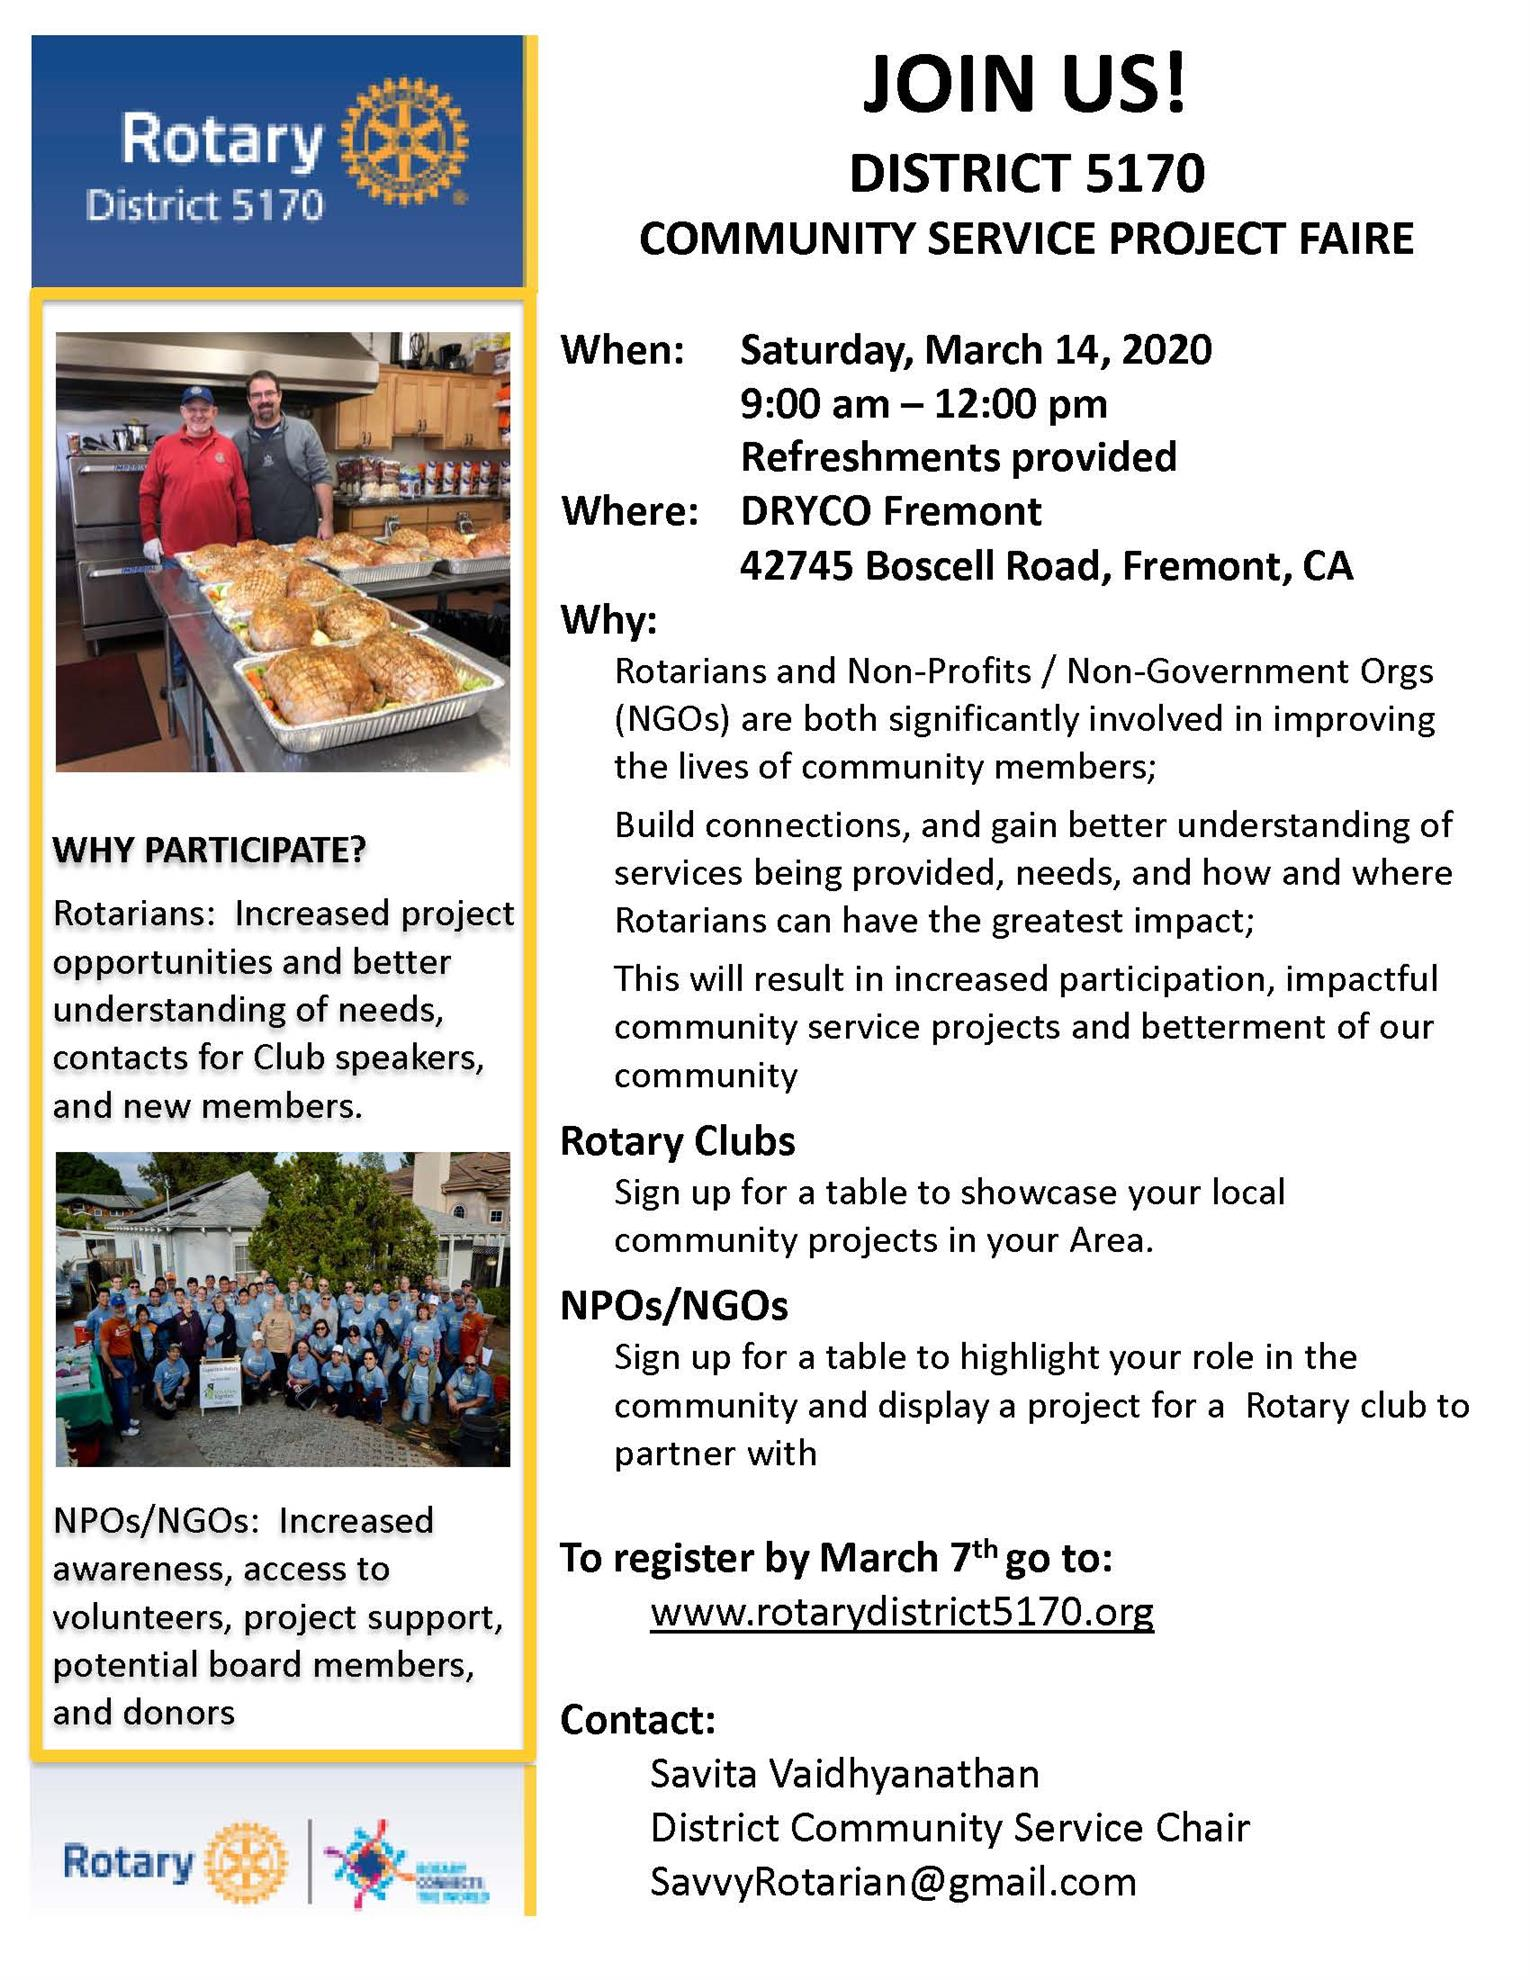 Community Service Project Faire Flyer updated